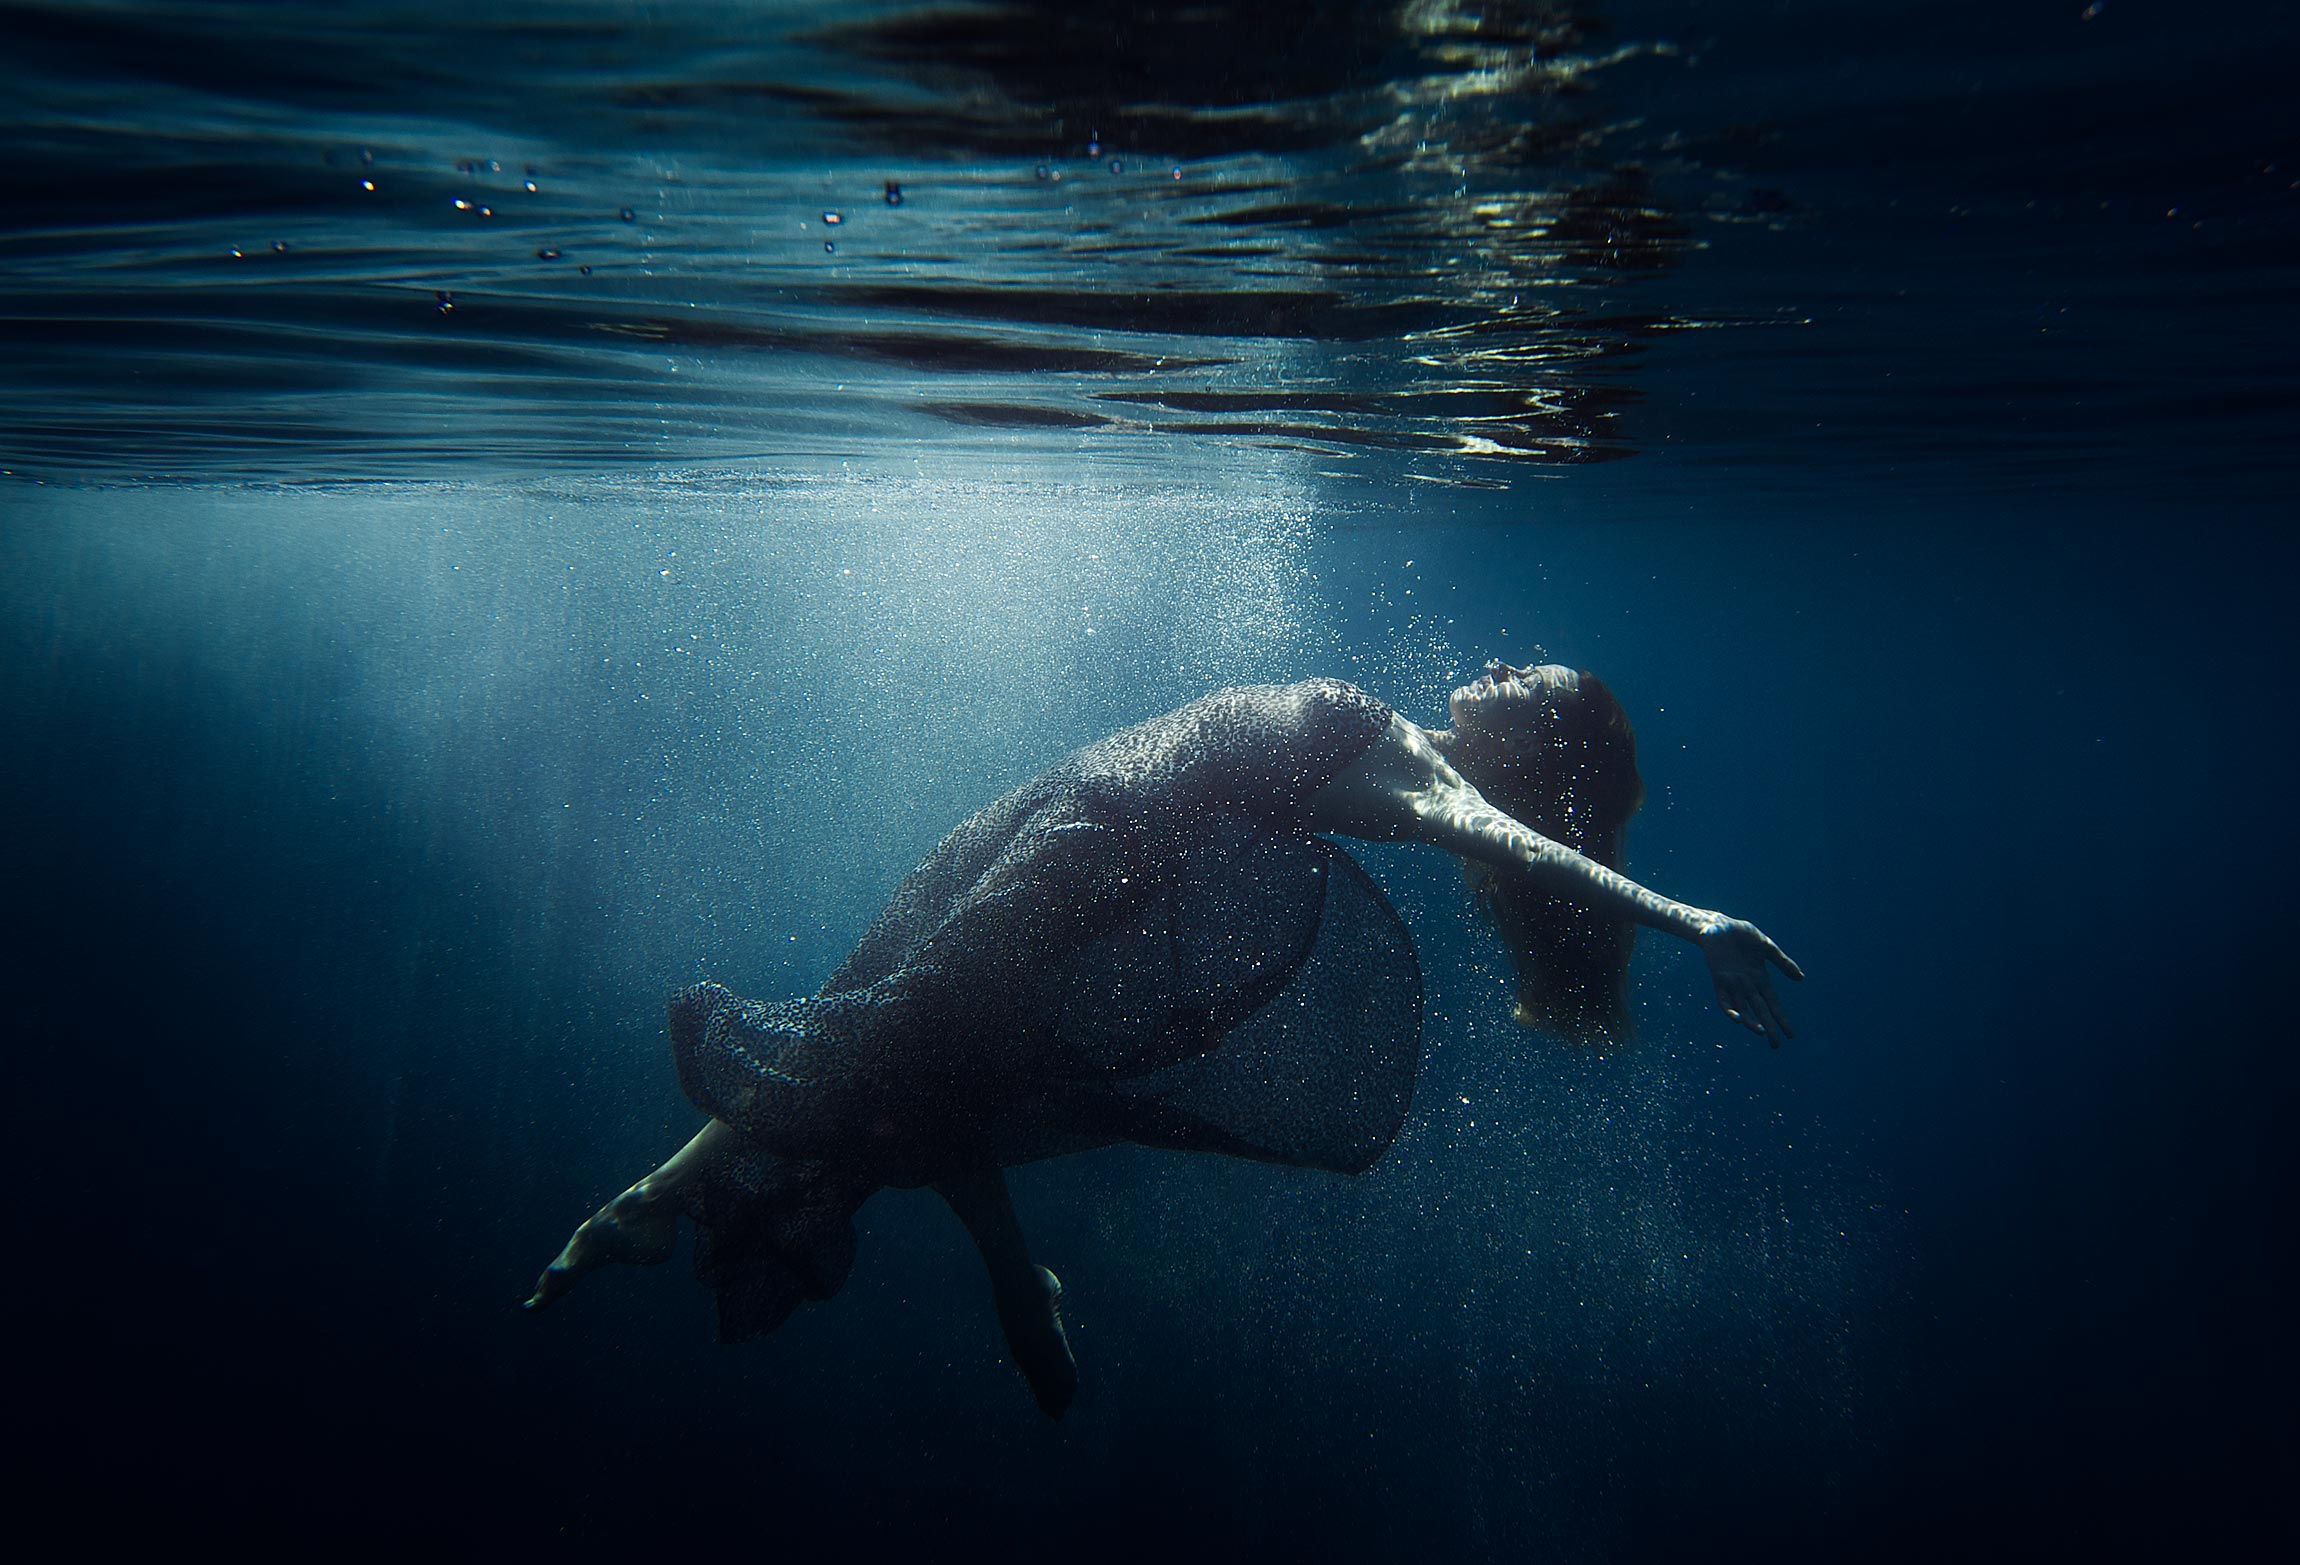 Underneath the surface